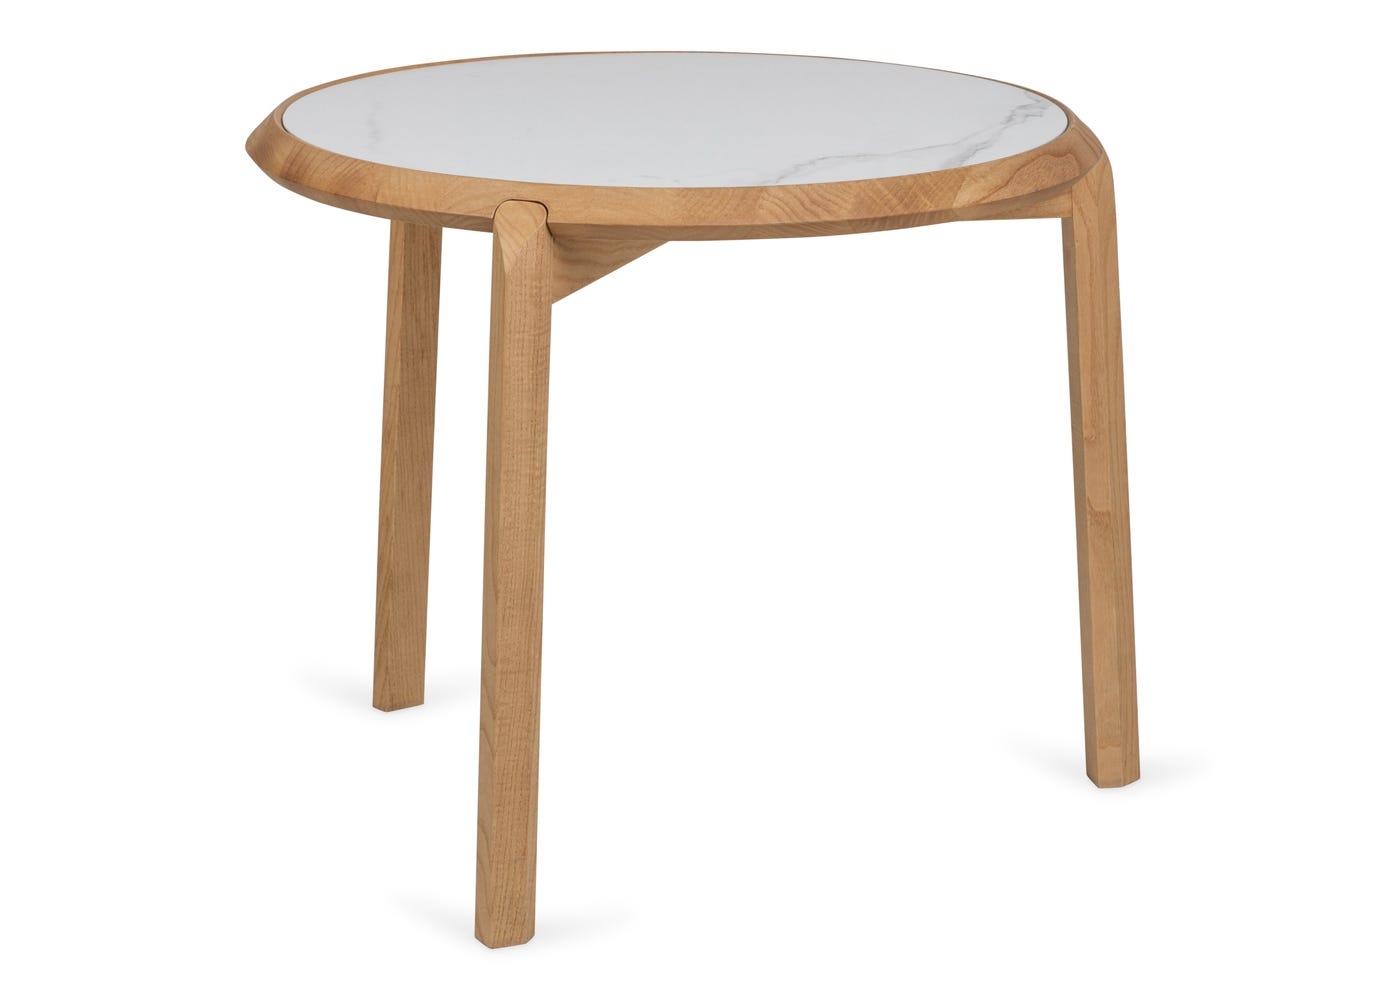 As shown: Notch side table